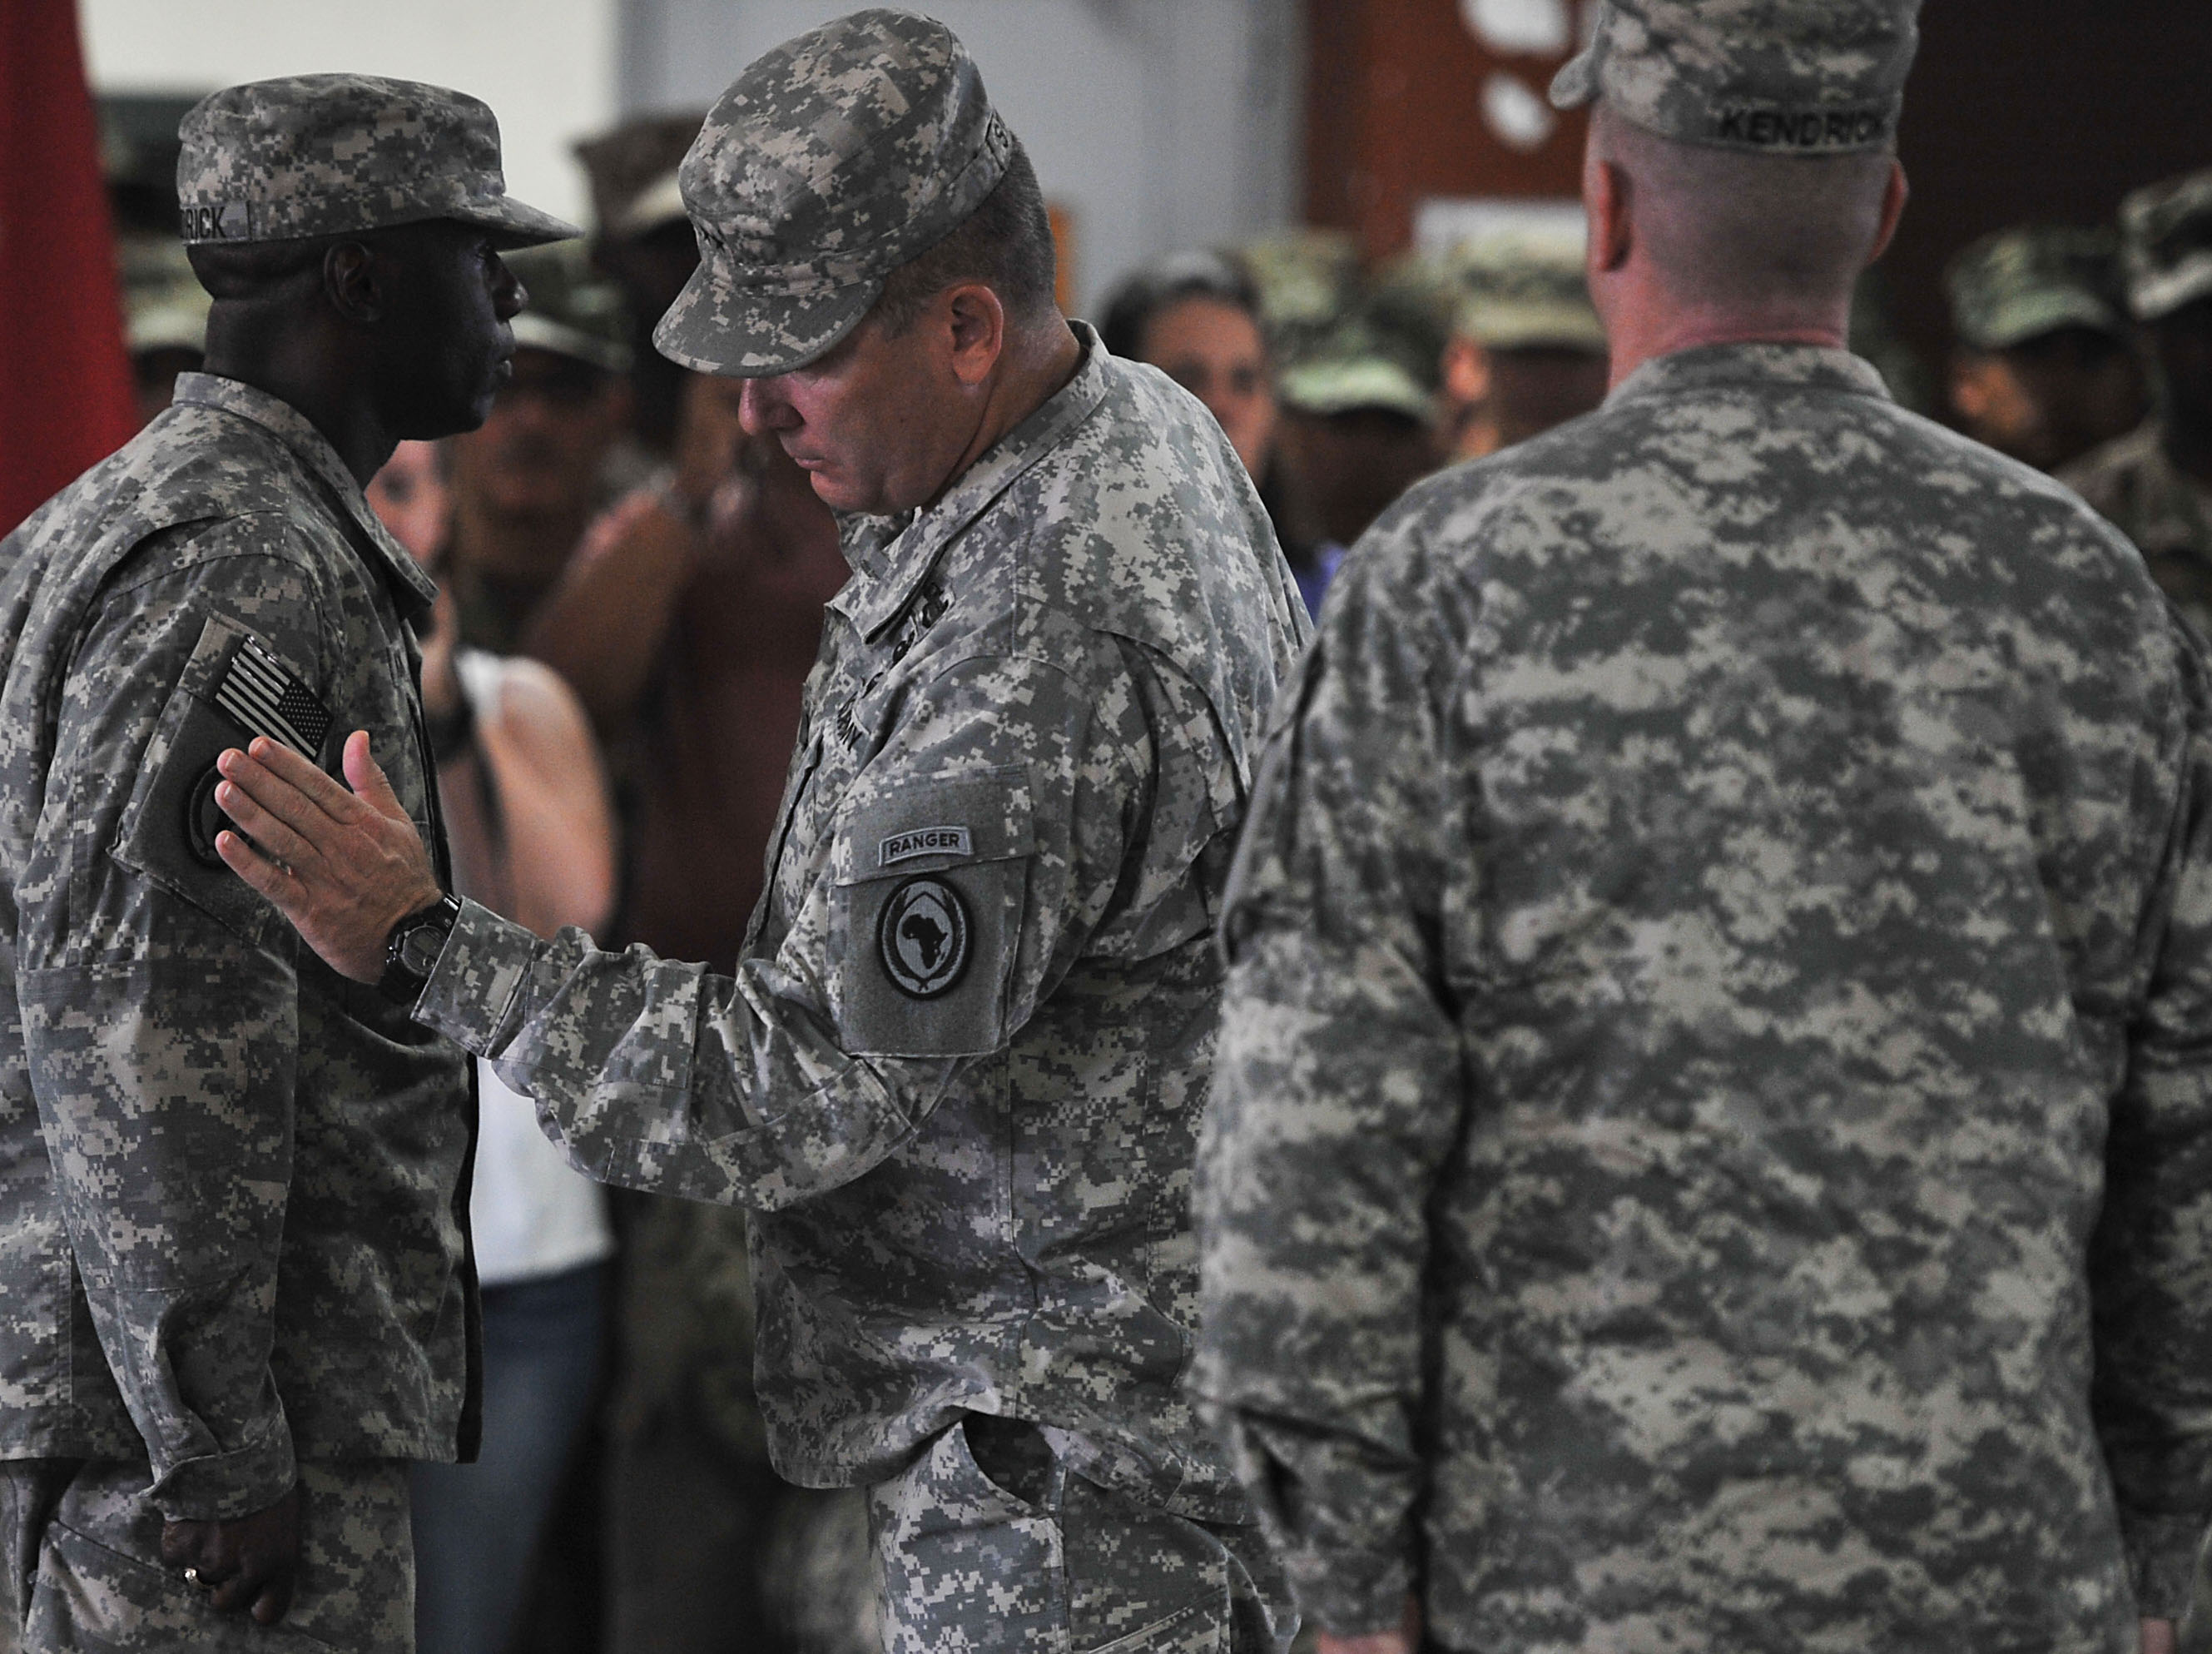 Maj. Gen. Mark Stammer, Combined Joint Task Force-Horn of Africa commanding general, presents Command Sgt. Maj. Butler Kendrick Jr. with the U.S. Africa Command combat patch during a ceremony at Camp Lemonnier, Djibouti, Nov. 28, 2015. The soldiers assigned to CJTF-HOA are now authorized to wear the U.S. Africa Command patch for the duration of their careers. (U.S. Air Force photo by Tech. Sgt. Dan DeCook)